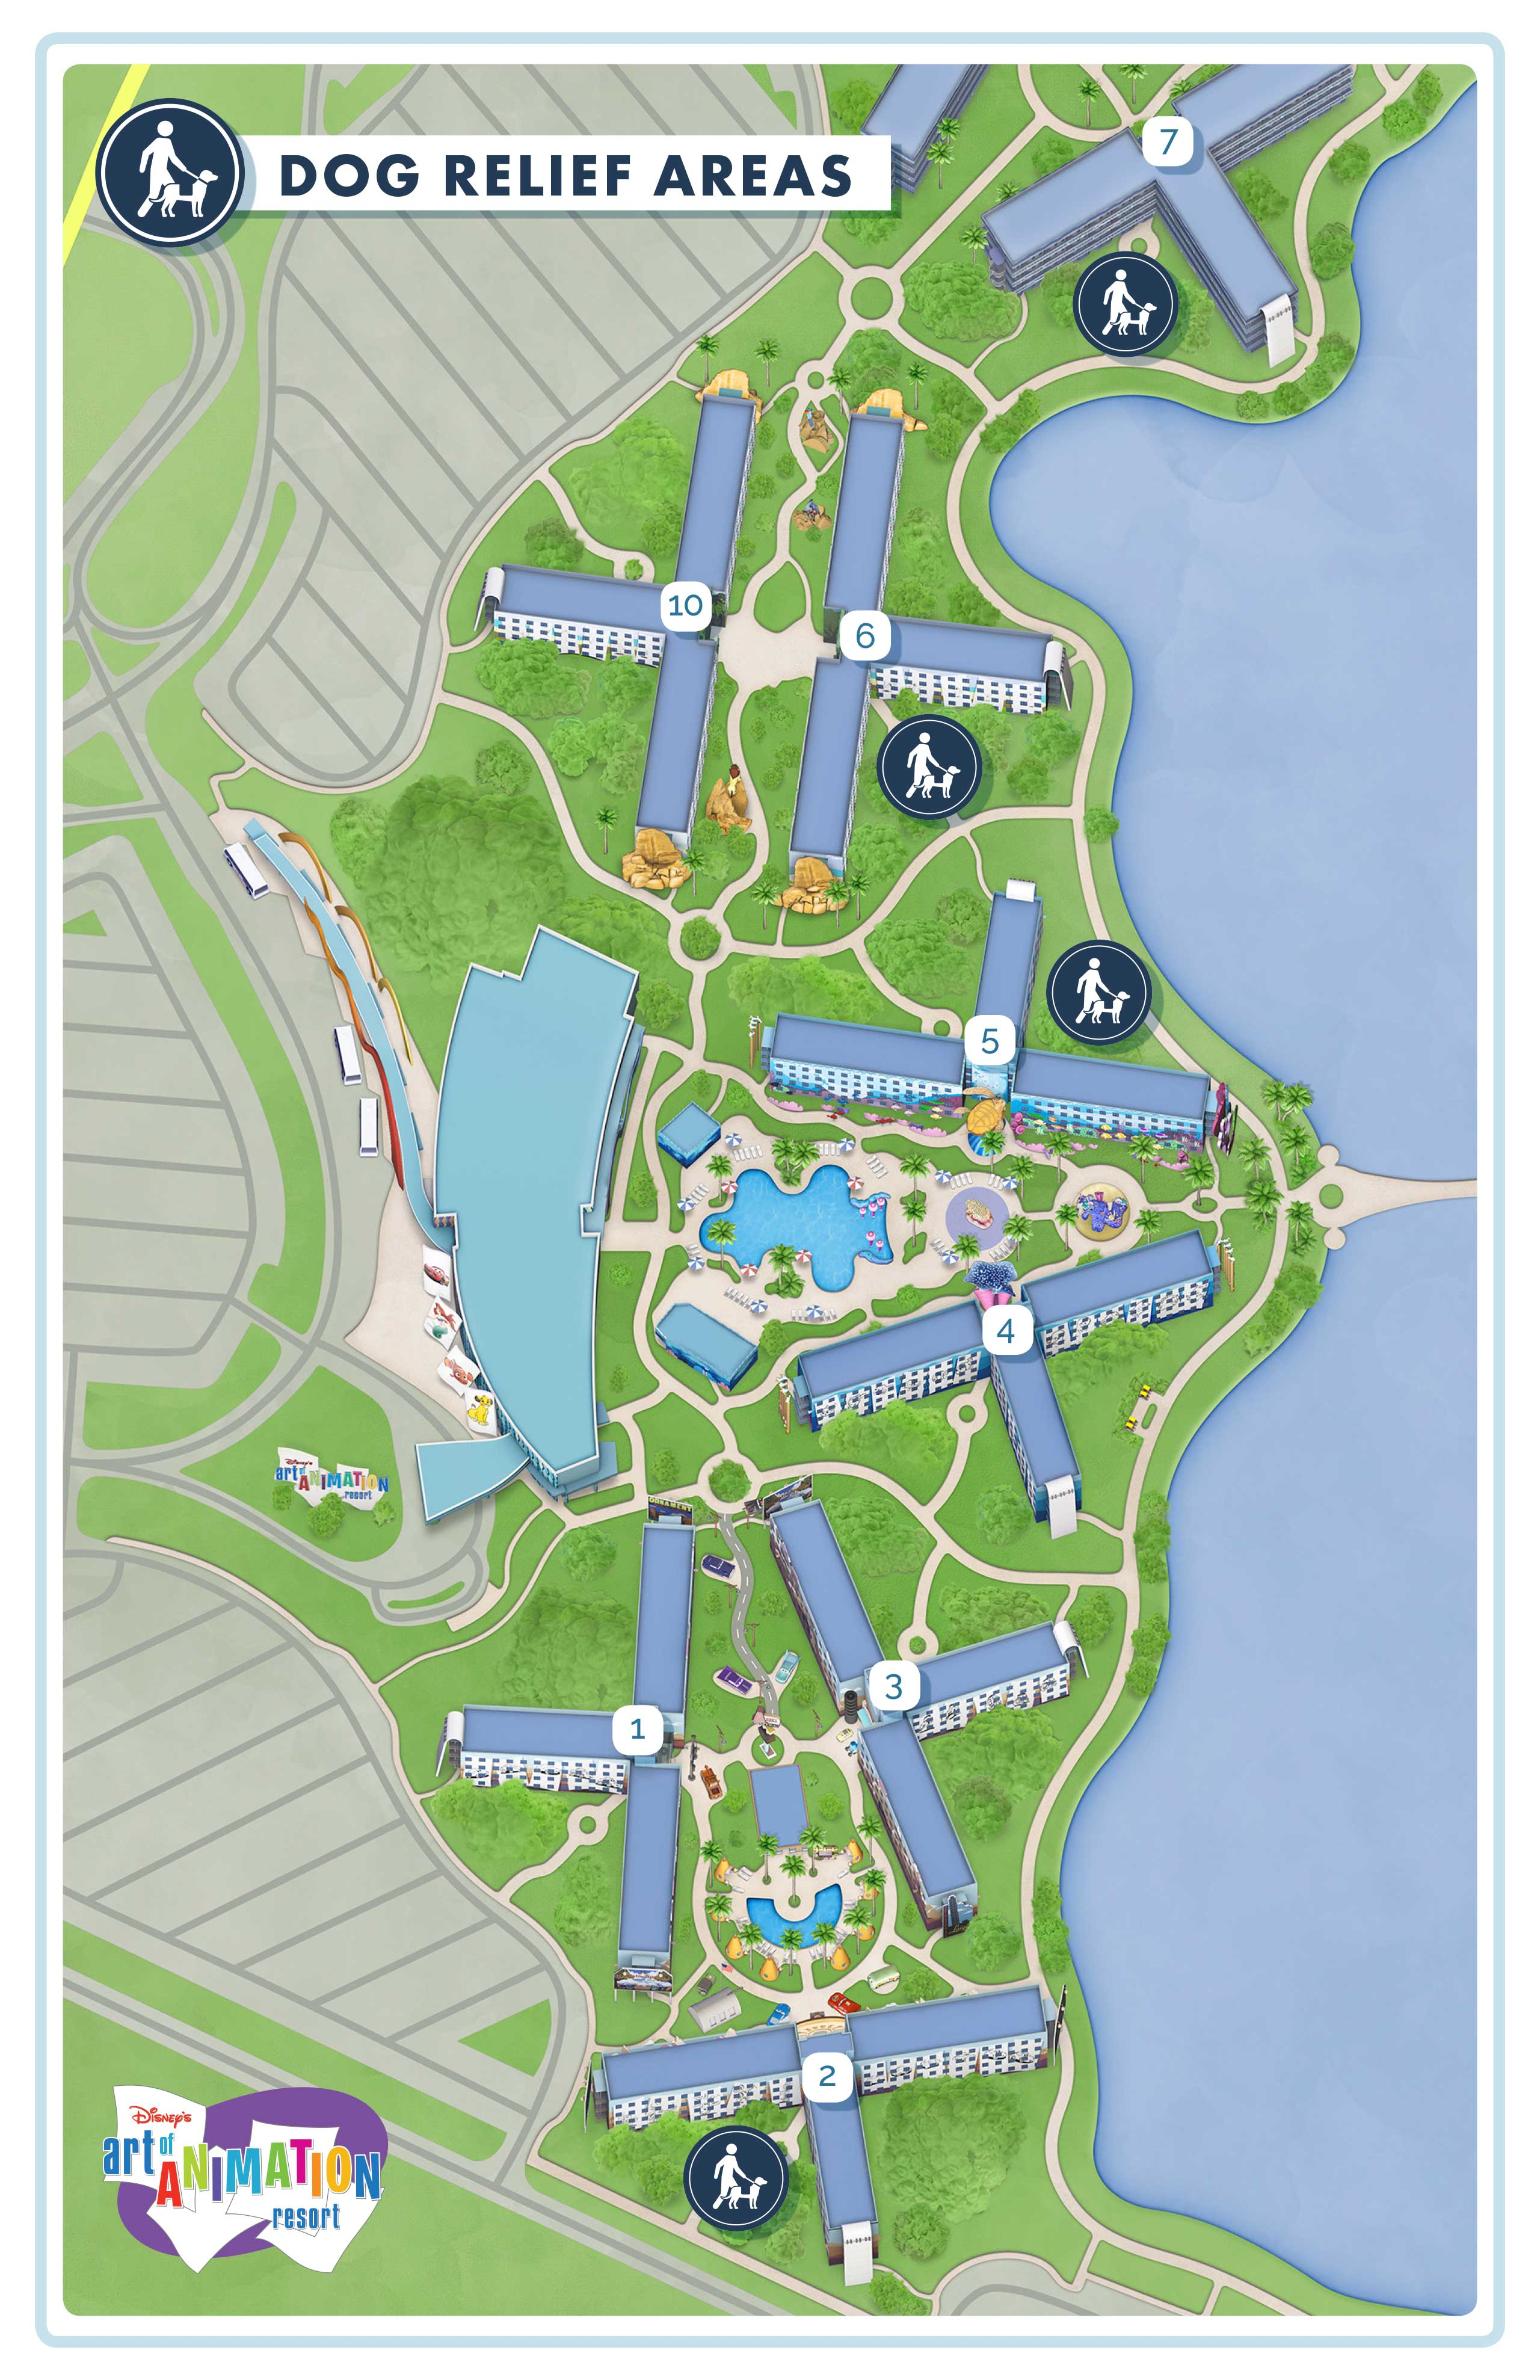 Dog Policies and Dog Relief Areas at Walt Disney World ... on wilderness lodge map, animal kingdom map, grand floridian map, crazy road map, bay lake tower map, boardwalk map, caribbean beach map, magic kingdom map, downtown disney map, art and animation, coronado springs map, best world map, all-star disney hotel map, usa map, art of disney, australian animal map, all star sports map, art in animation, disney world map, pop century map,